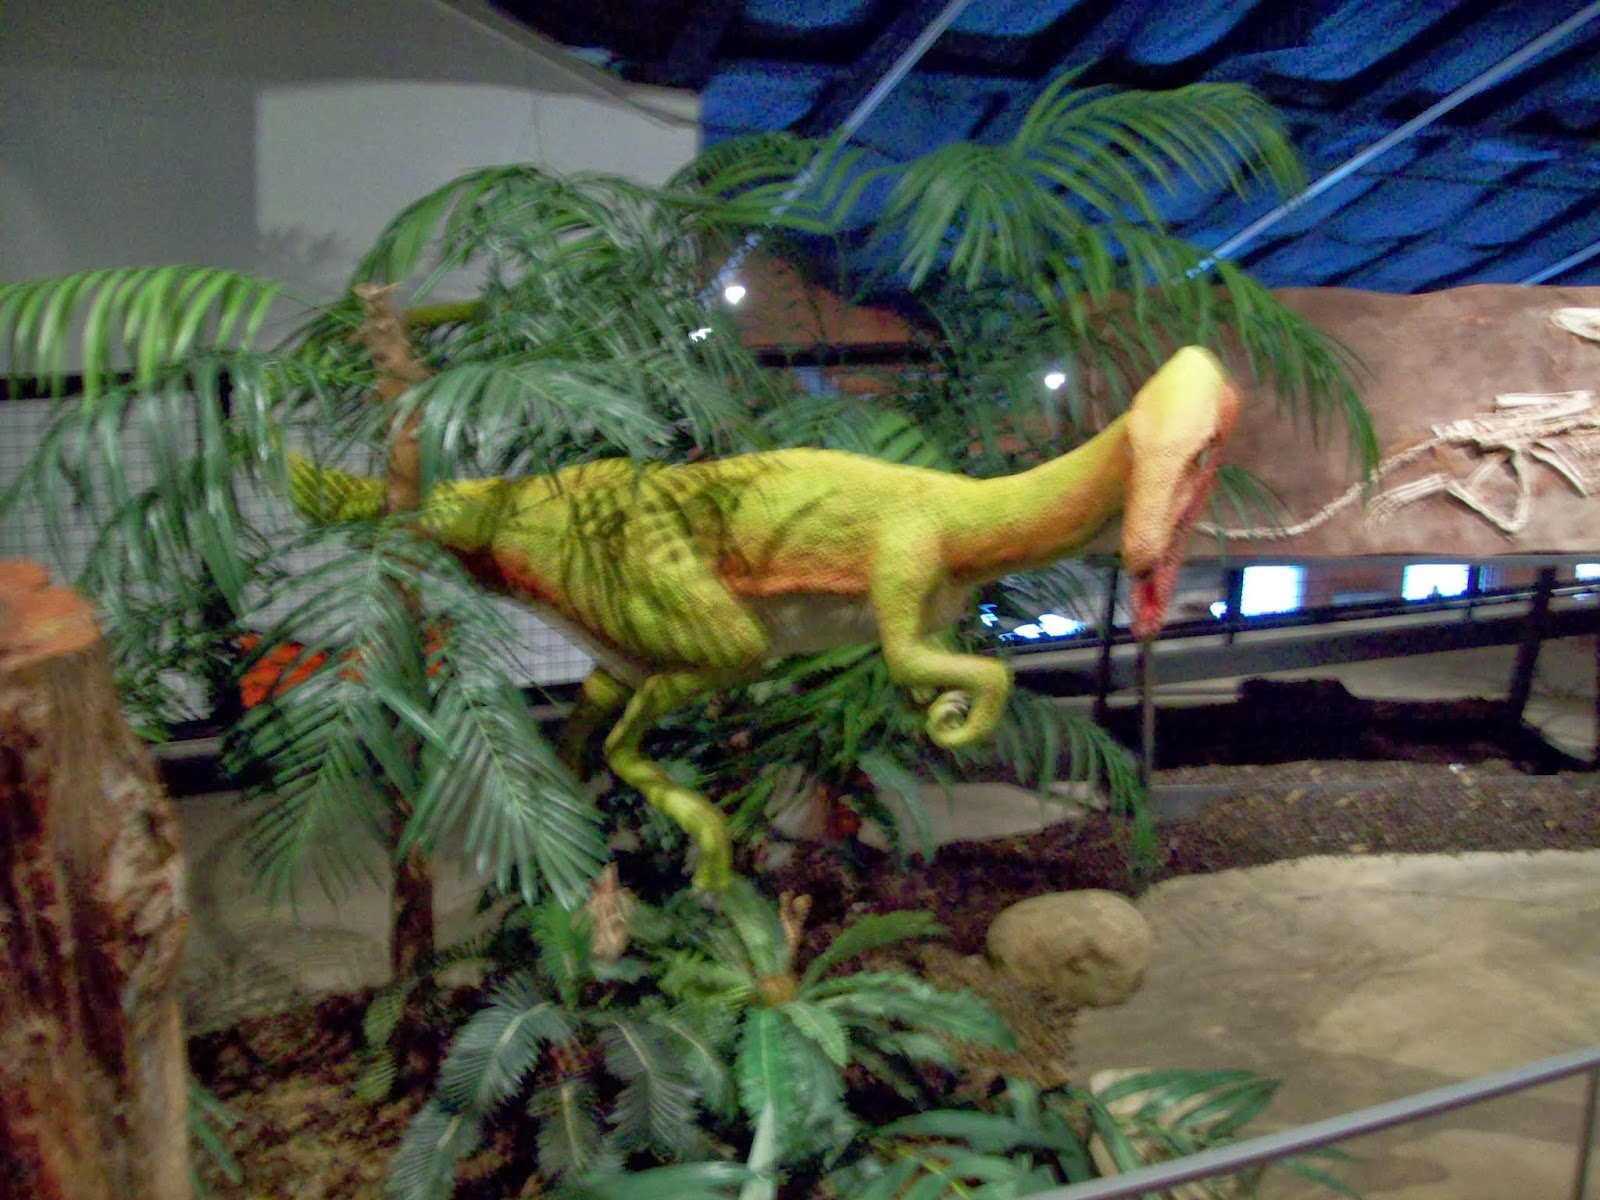 Houston Museum of Natural Science, Sugar Land - 114_6693.JPG